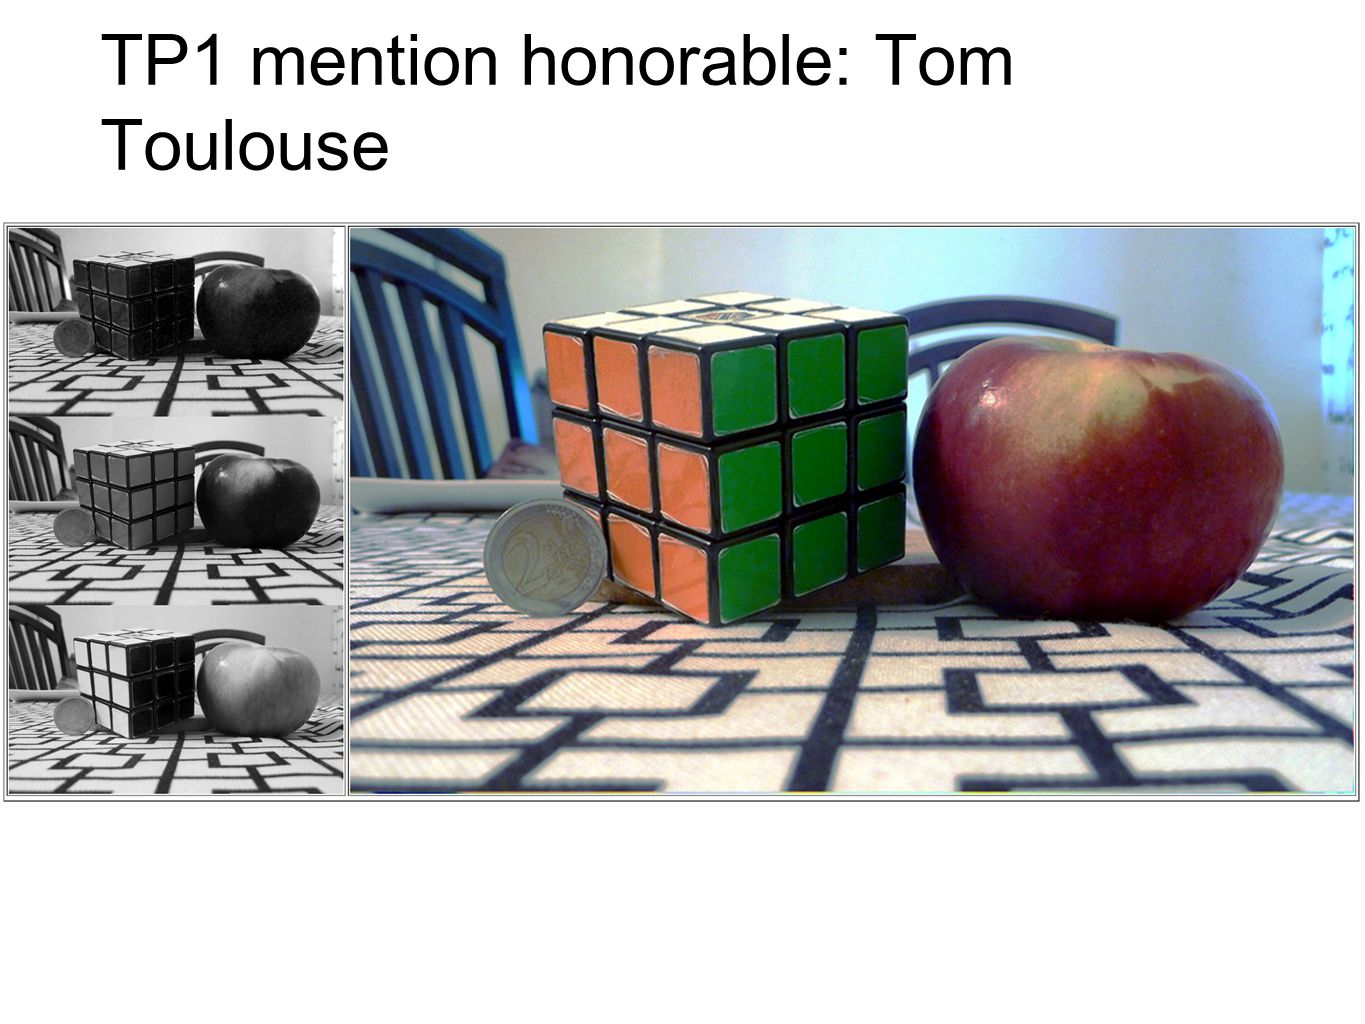 TP1 mention honorable: Tom Toulouse